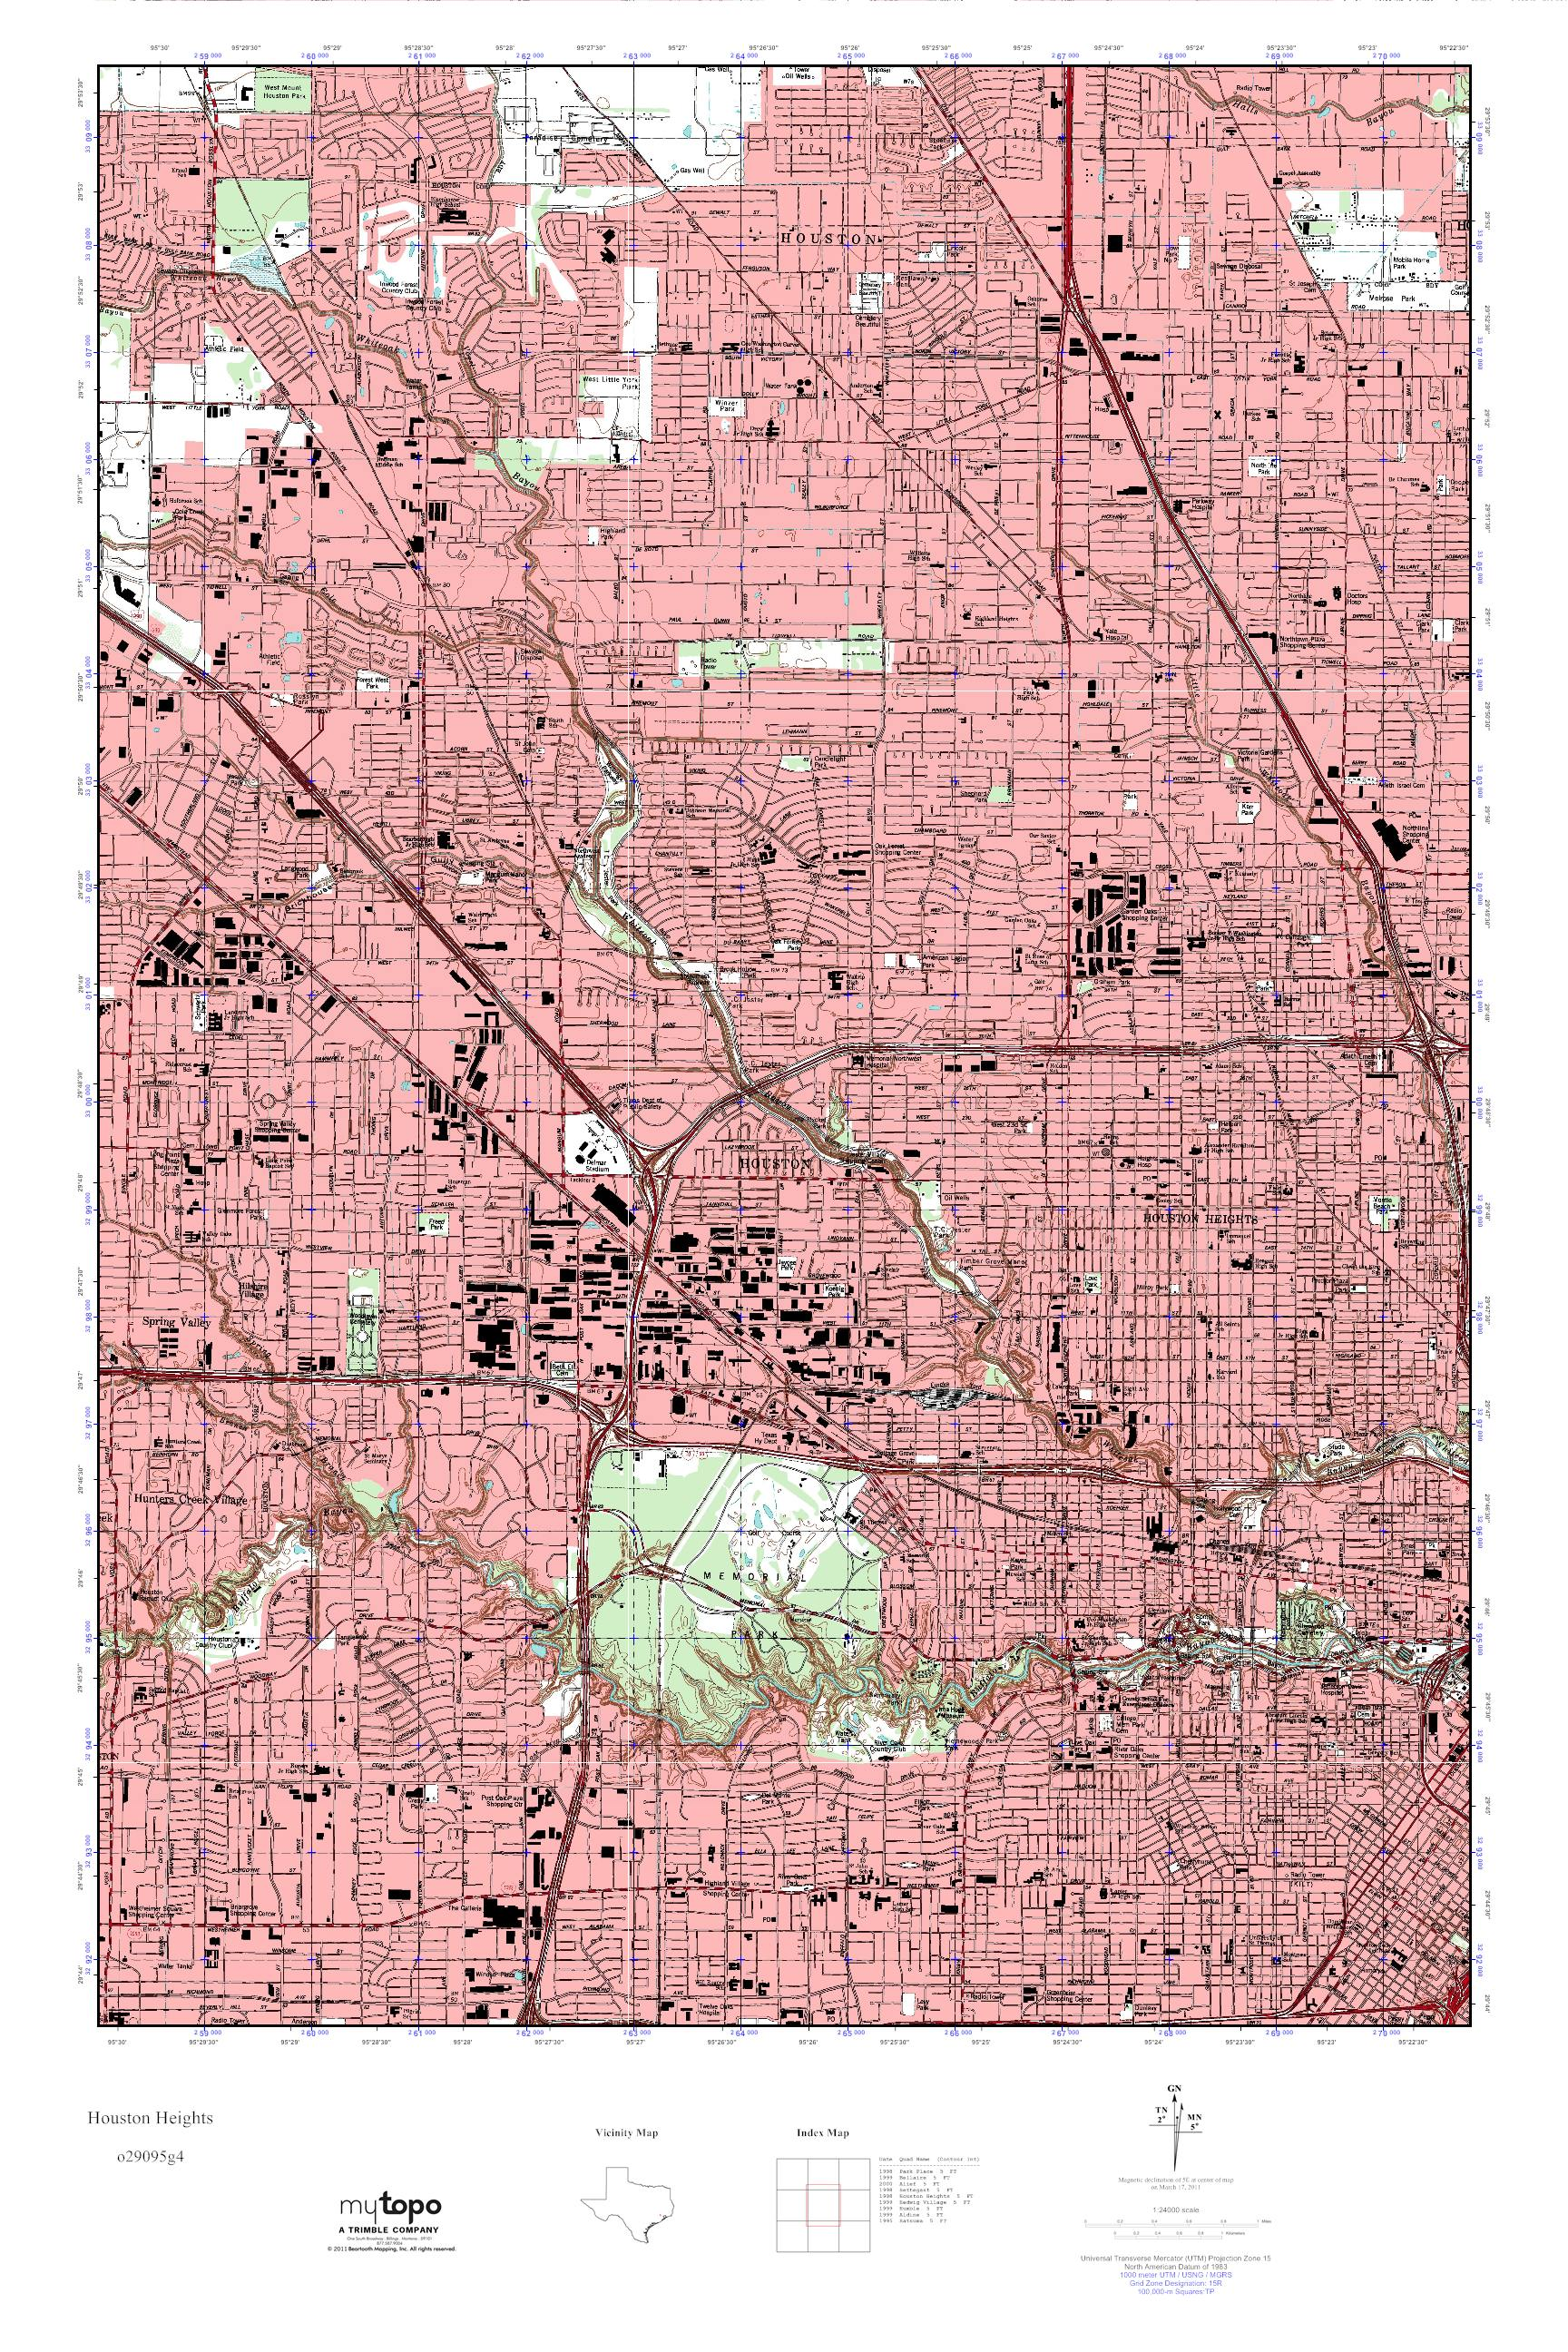 Mytopo Houston Heights Texas Usgs Quad Topo Map